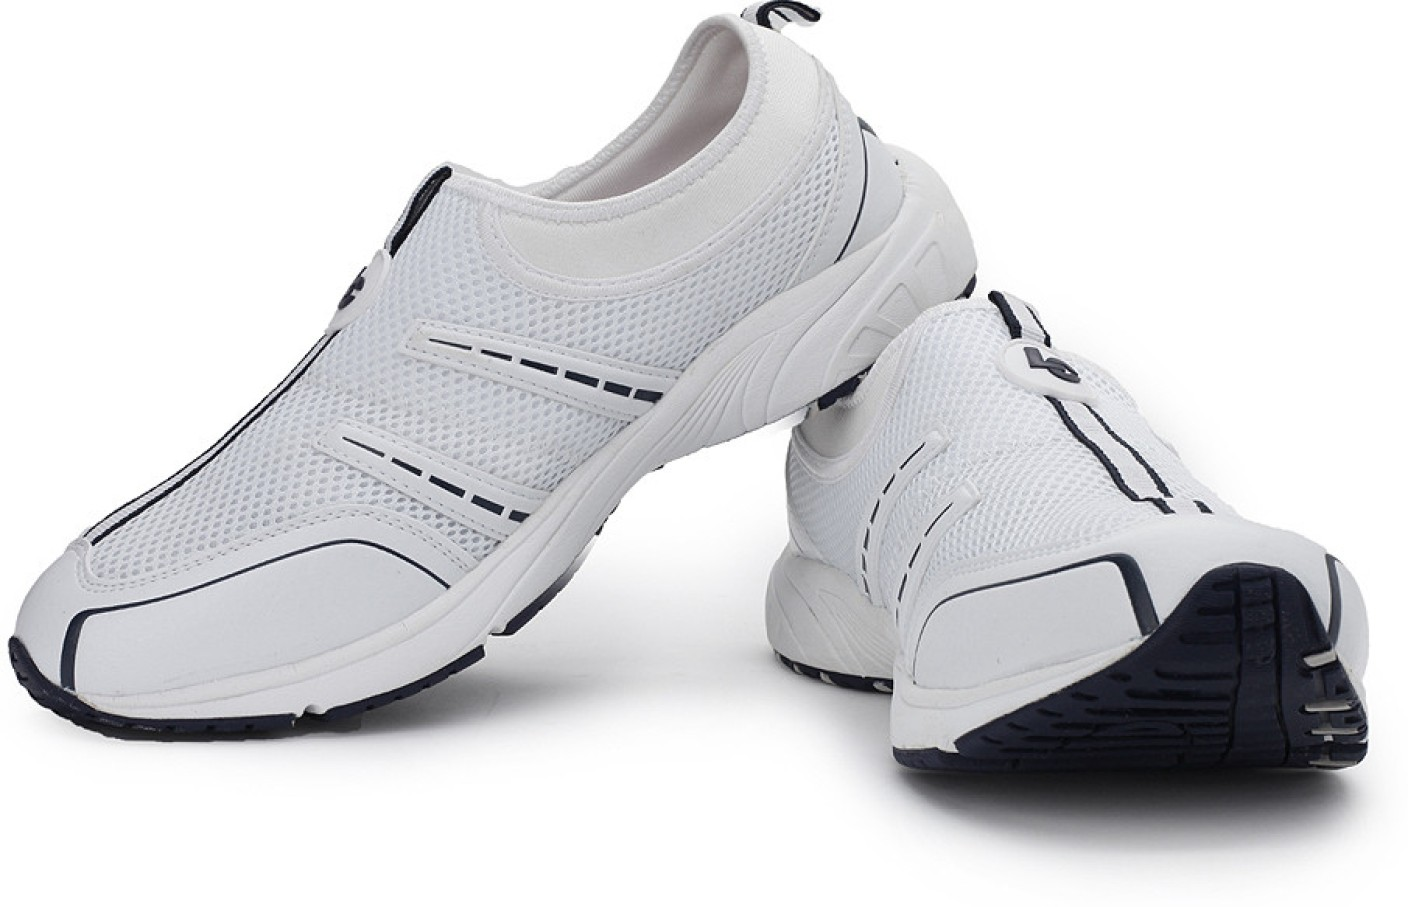 Can Running Shoes Be Worn For Walking